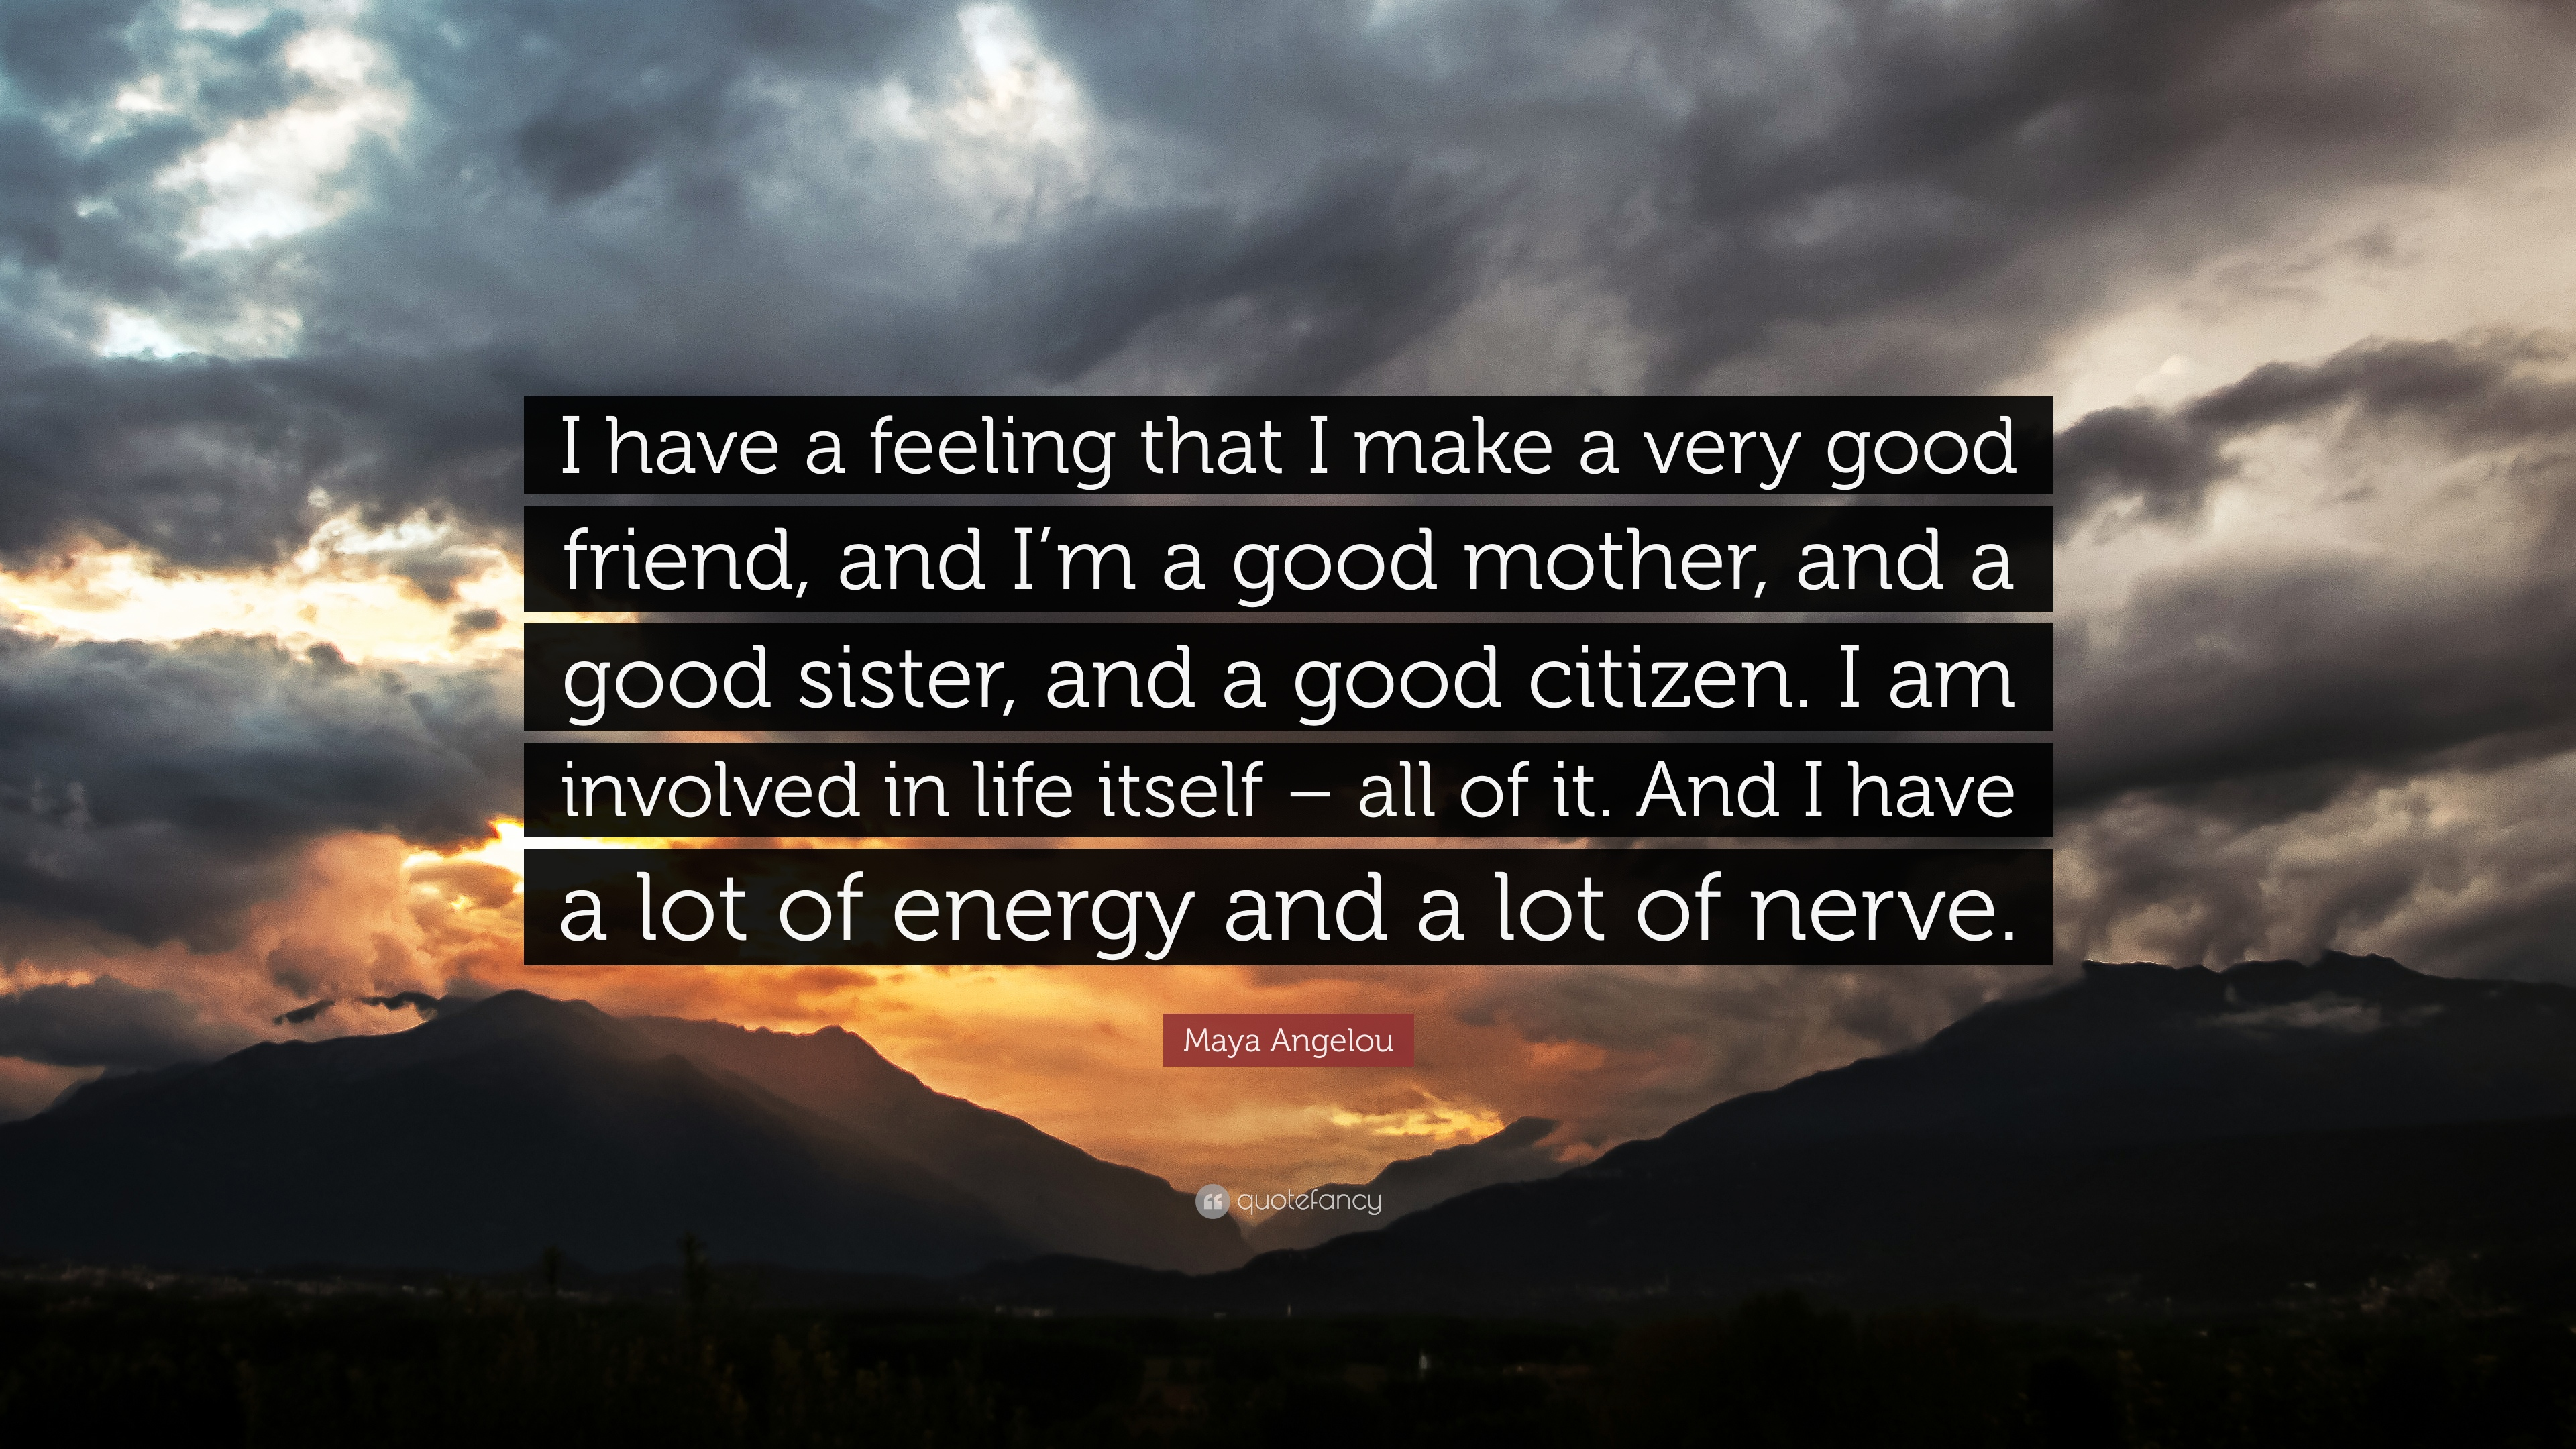 Maya Angelou Quote I Have A Feeling That I Make A Very Good Friend